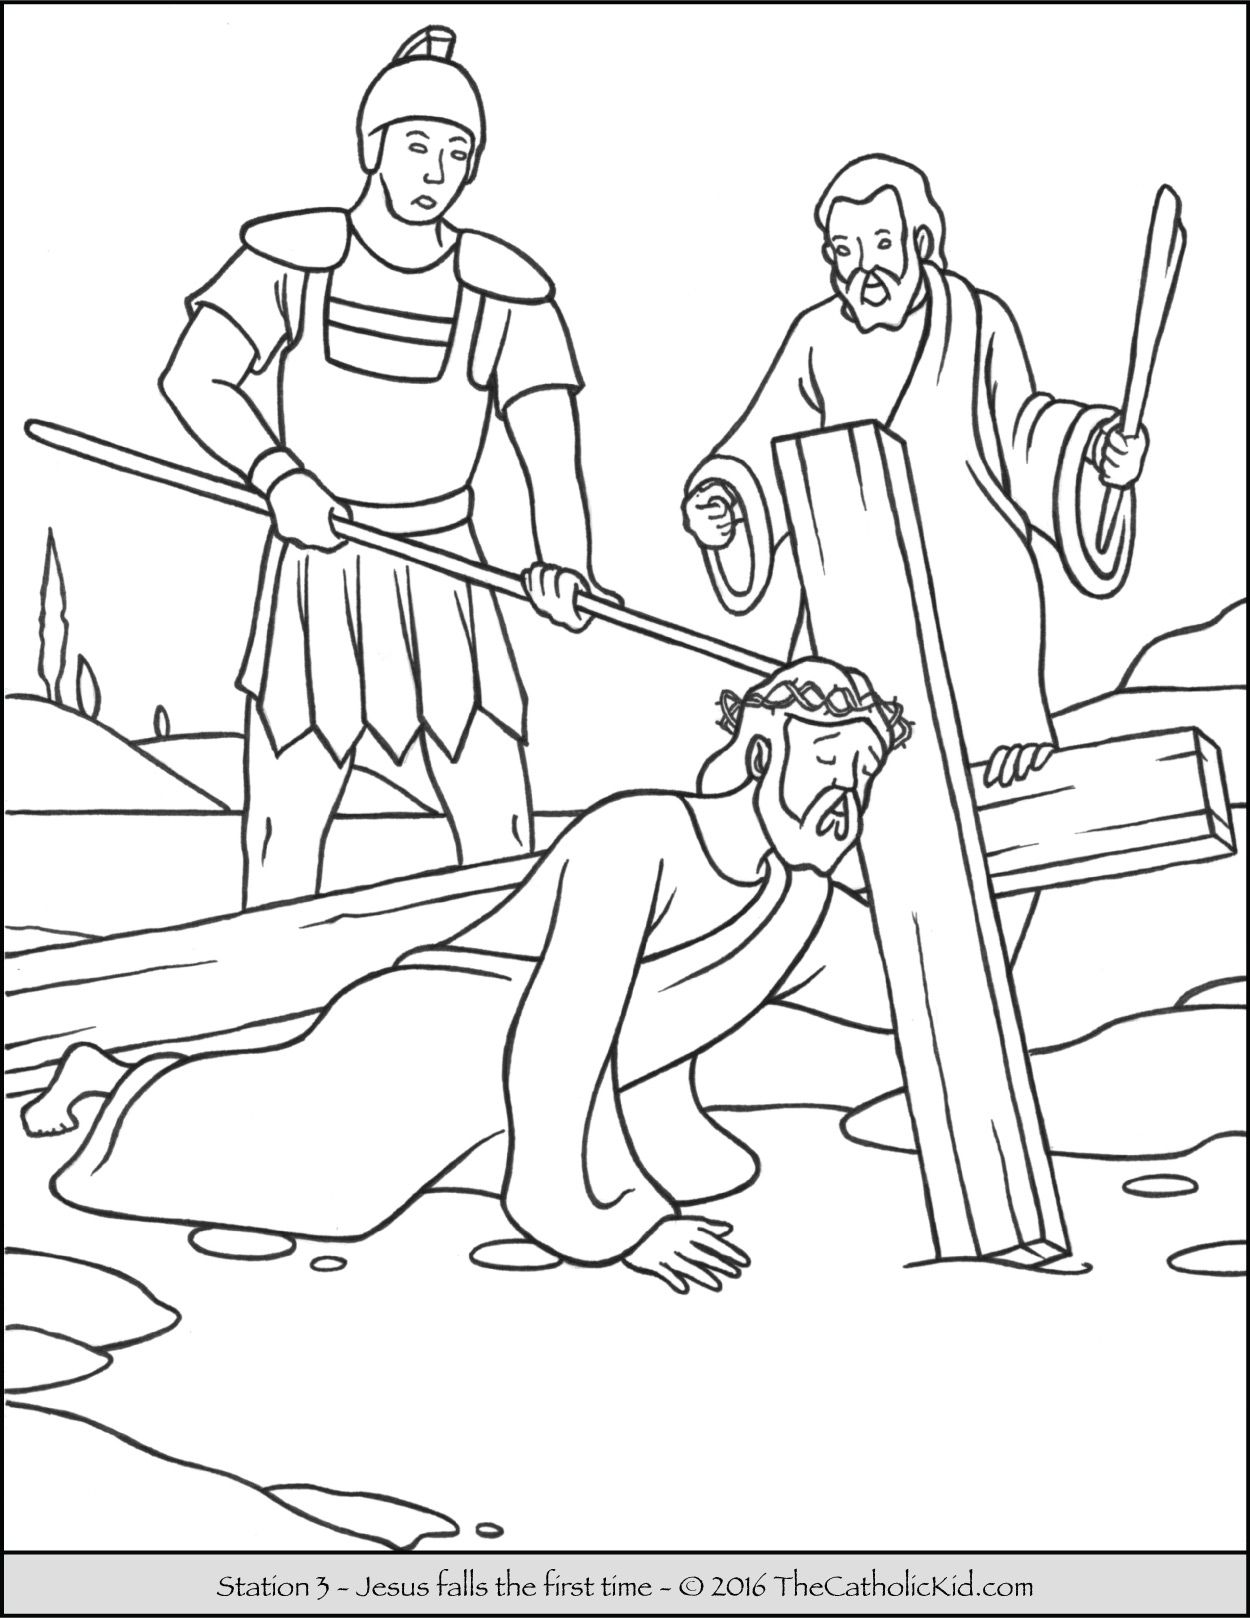 The stations of the cross coloring pages ~ Stations Of The Cross Coloring Page - Coloring Home